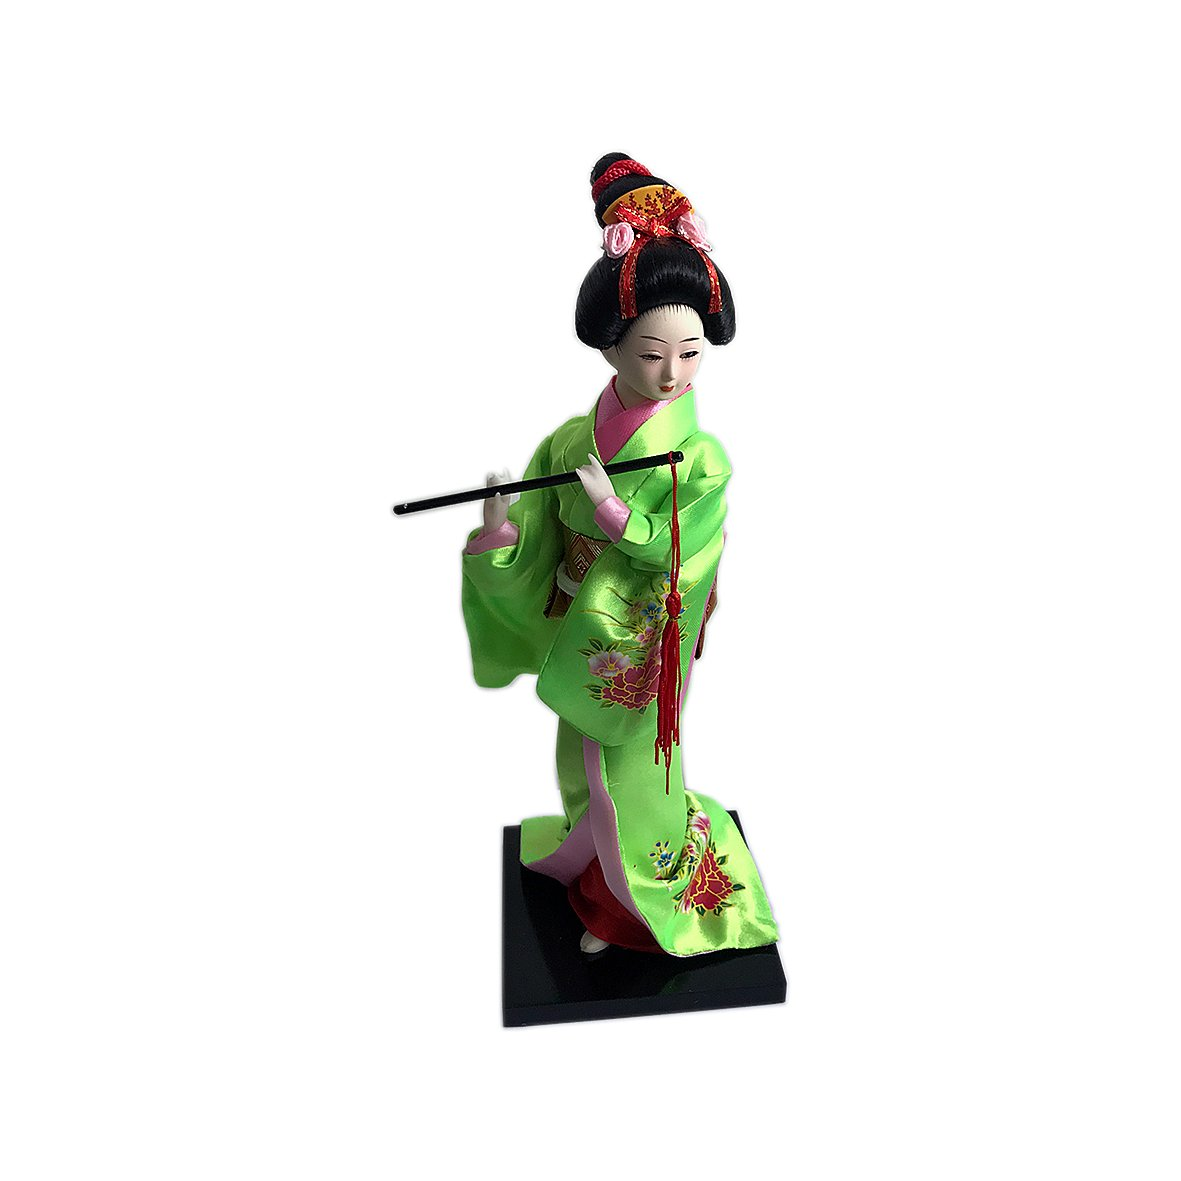 """JG.Betty 9"""" 23cm Japanese Folk Kimono Geisha Doll Maiko Doll puppet stand on Base for Decorative Home and Hotel Gifts Doll (9 Inch, Green Doll JD0003)"""